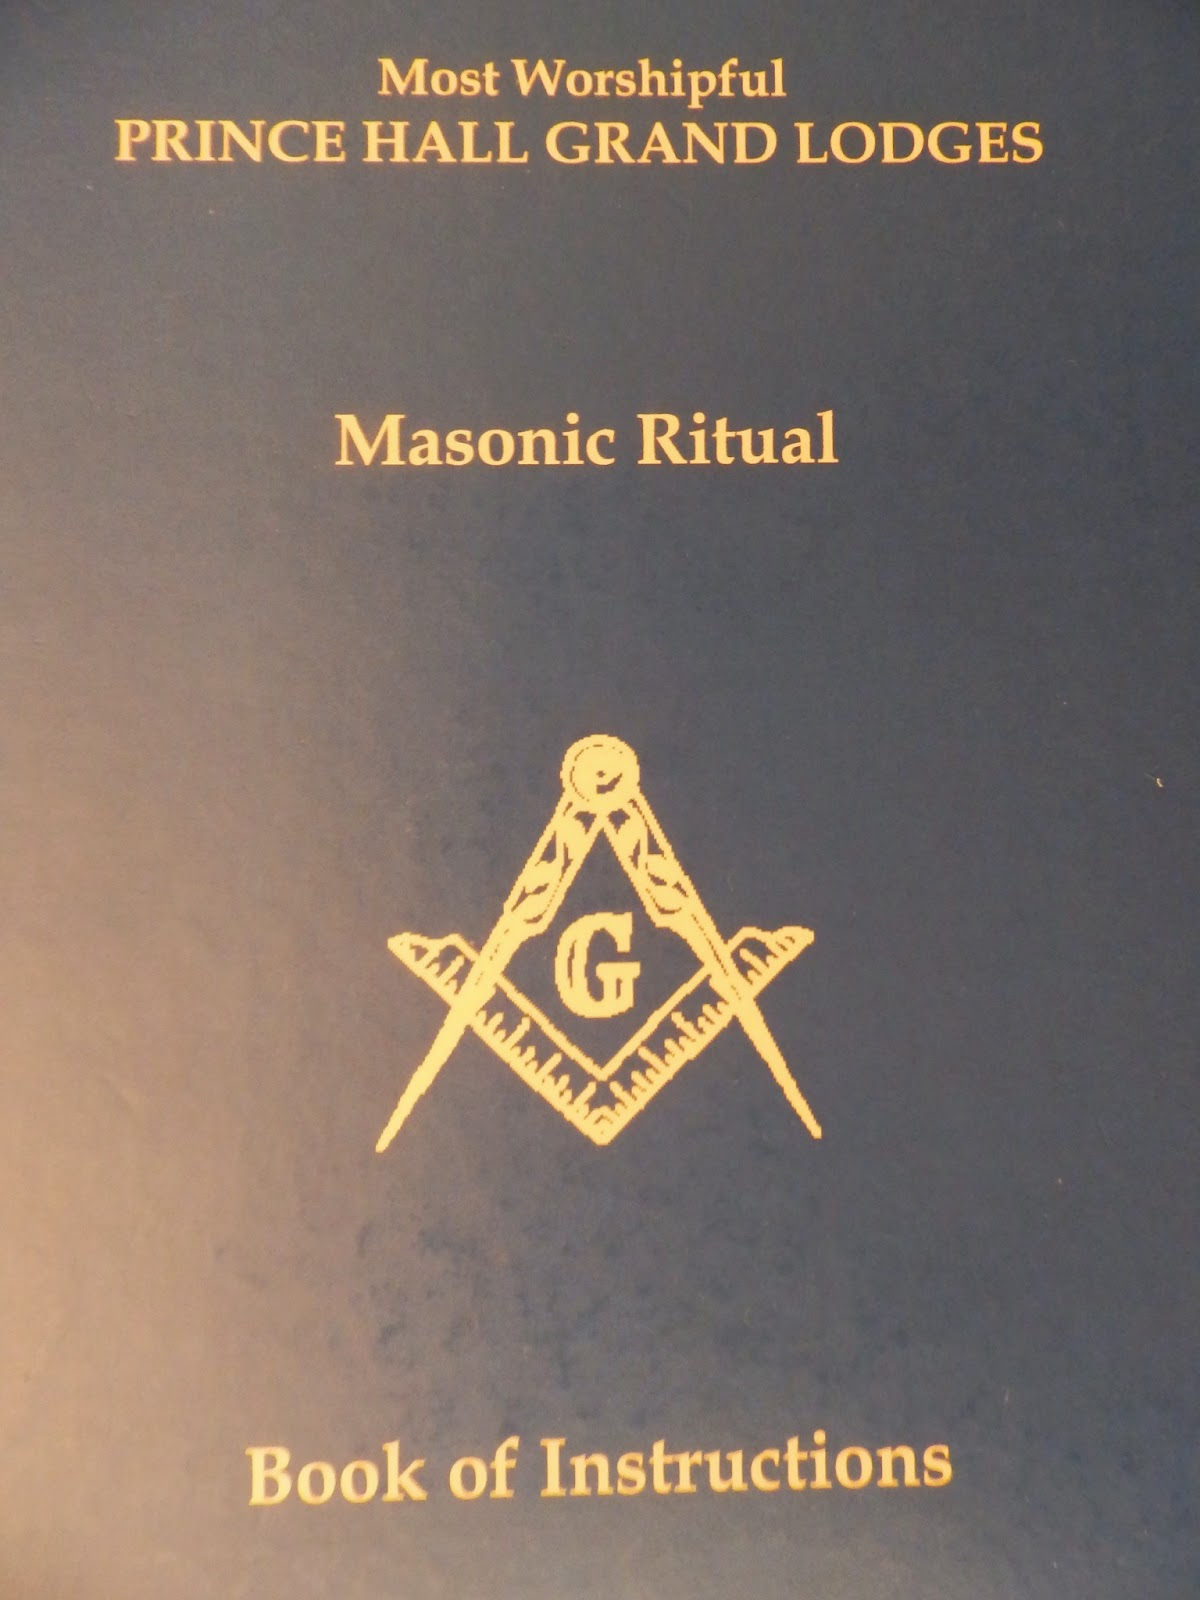 The quill and the sword may 2013 for Masonic craft ritual book